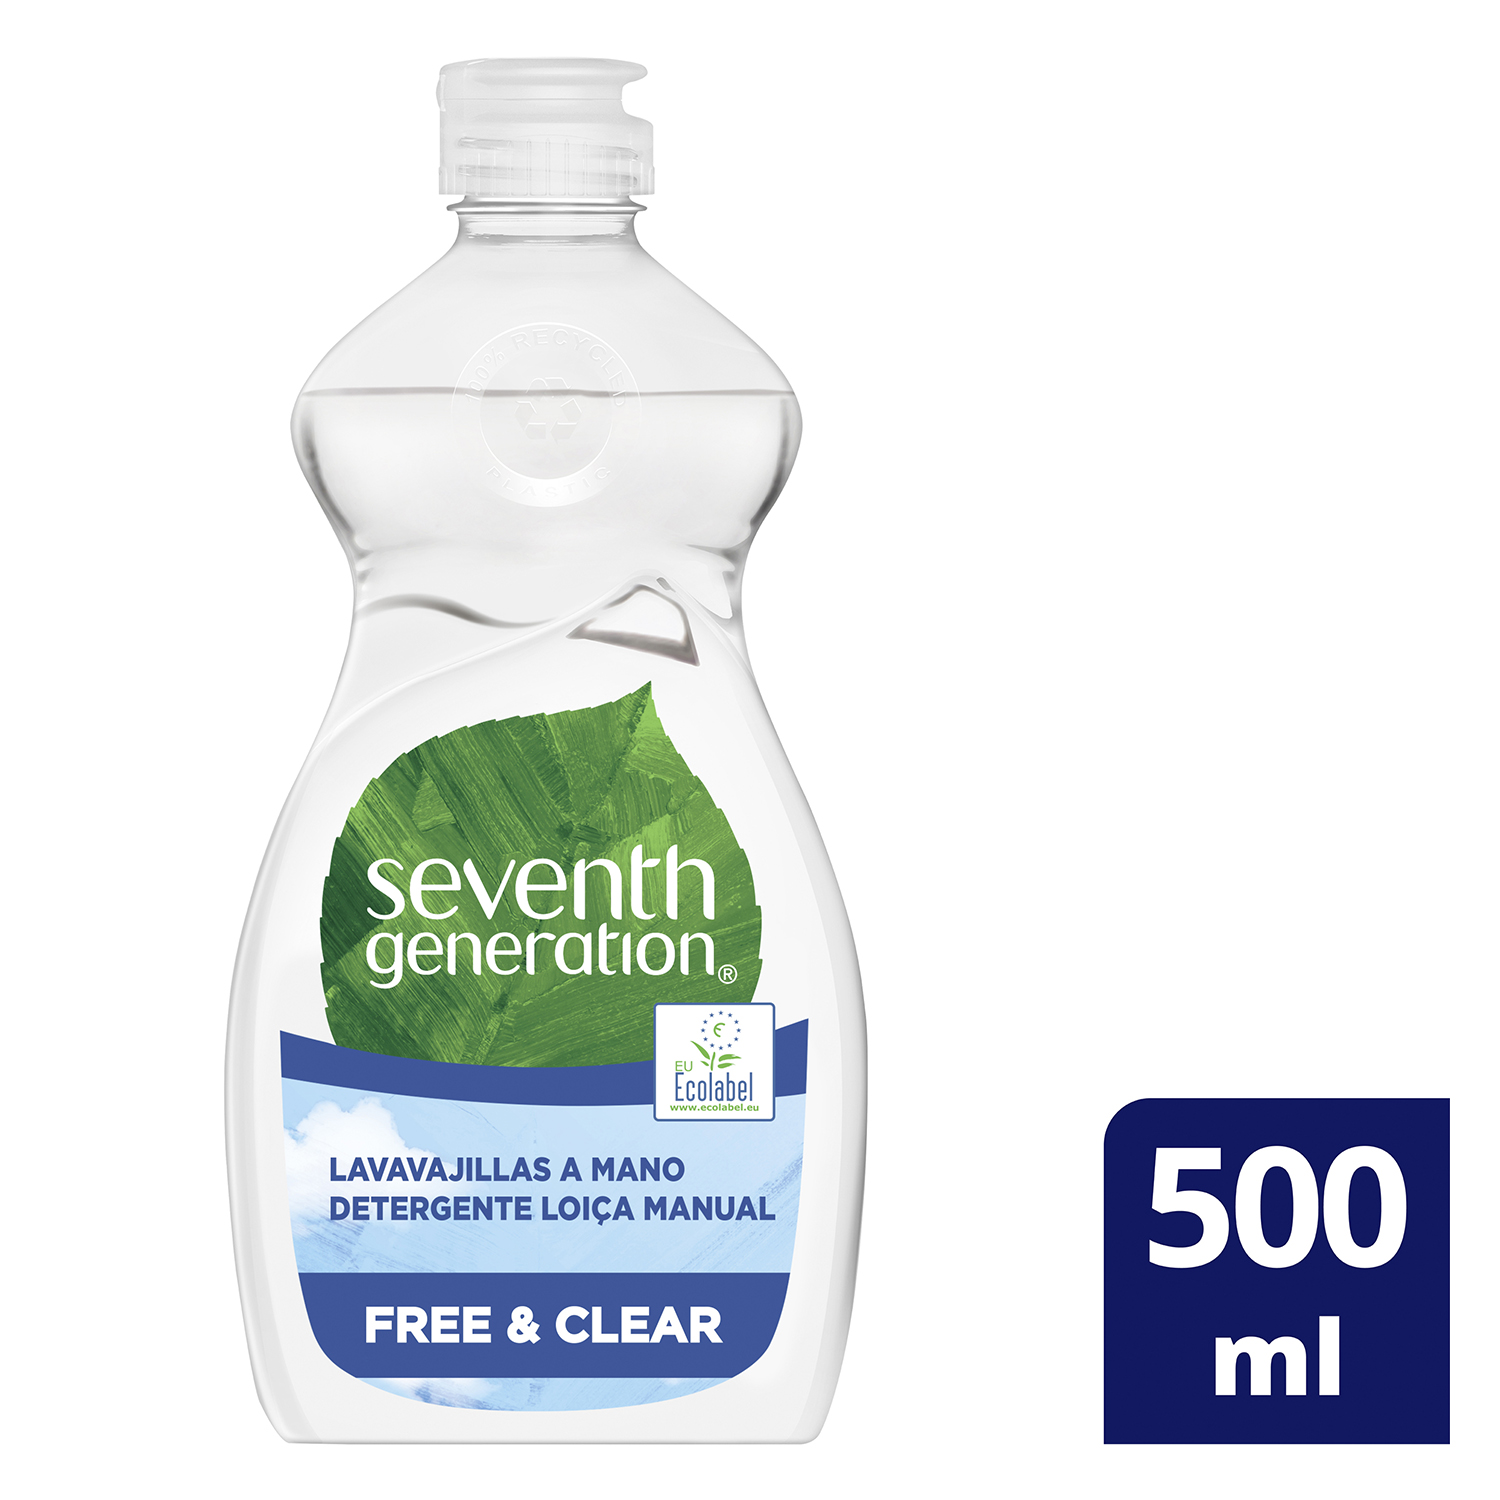 Lavavajillas a mano ecológico Free & Clear Seventh Generation 500 ml. - 3